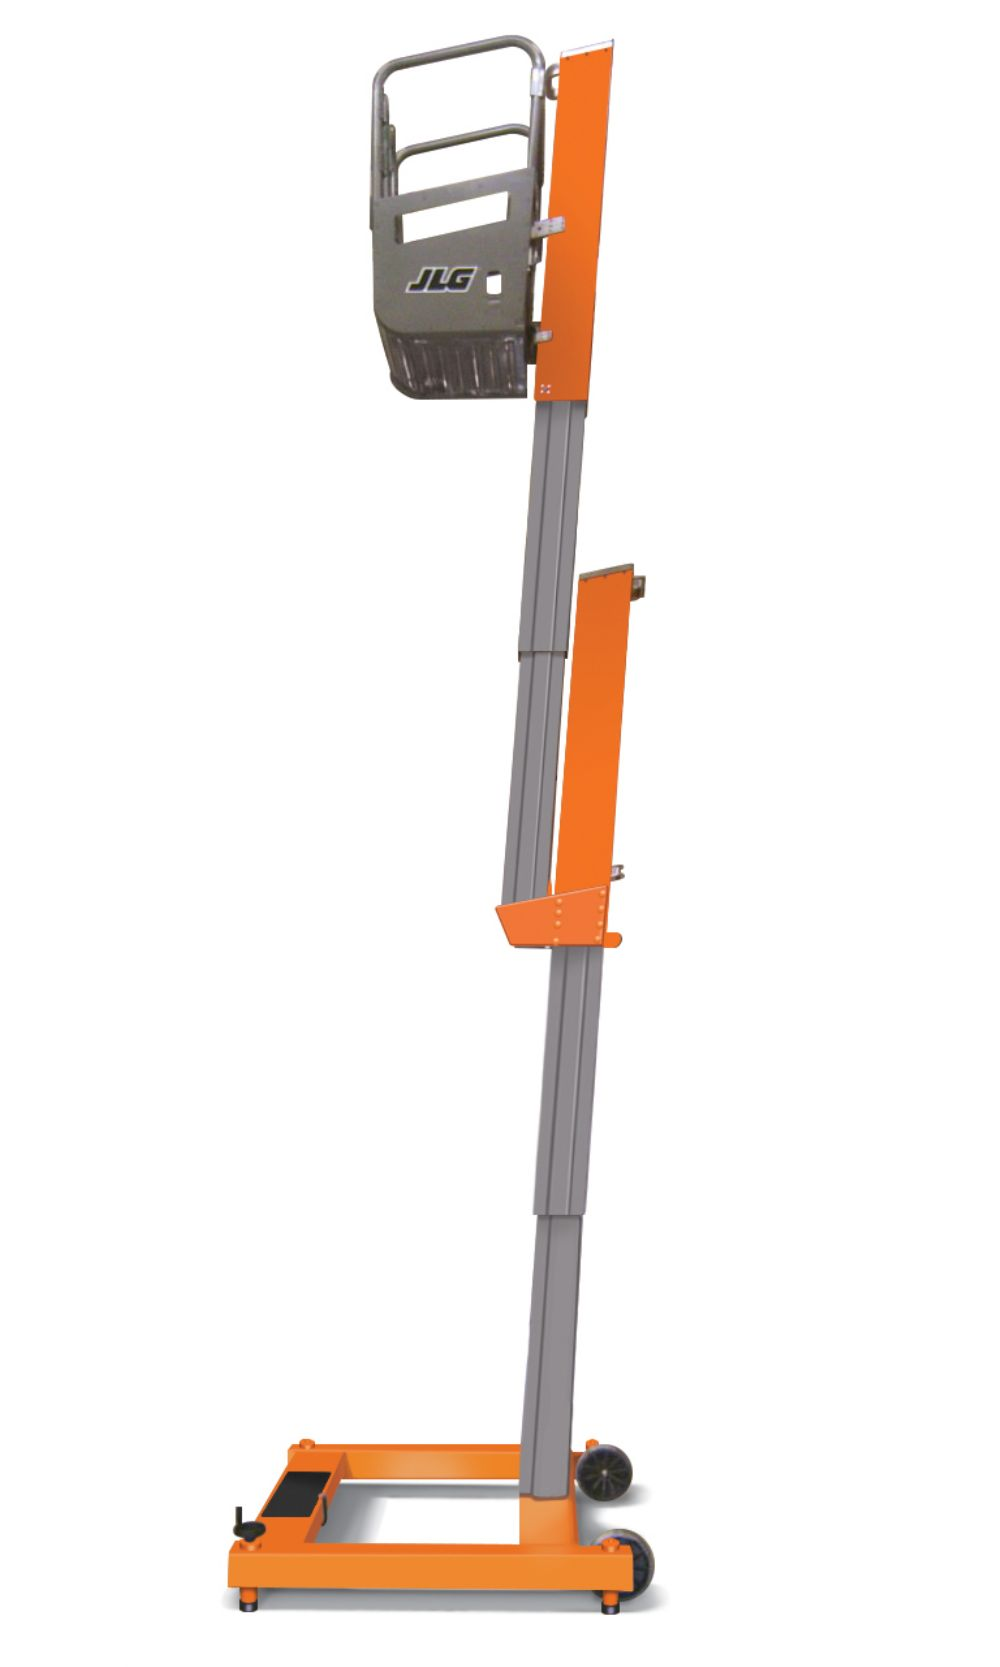 The JLG FT140 features a new telescoping mast that provides clearance when you need it and is easily stowed when you want it, allowing workers to stand in an enclosed platform and move hands-free in a 360-degree range of motion.